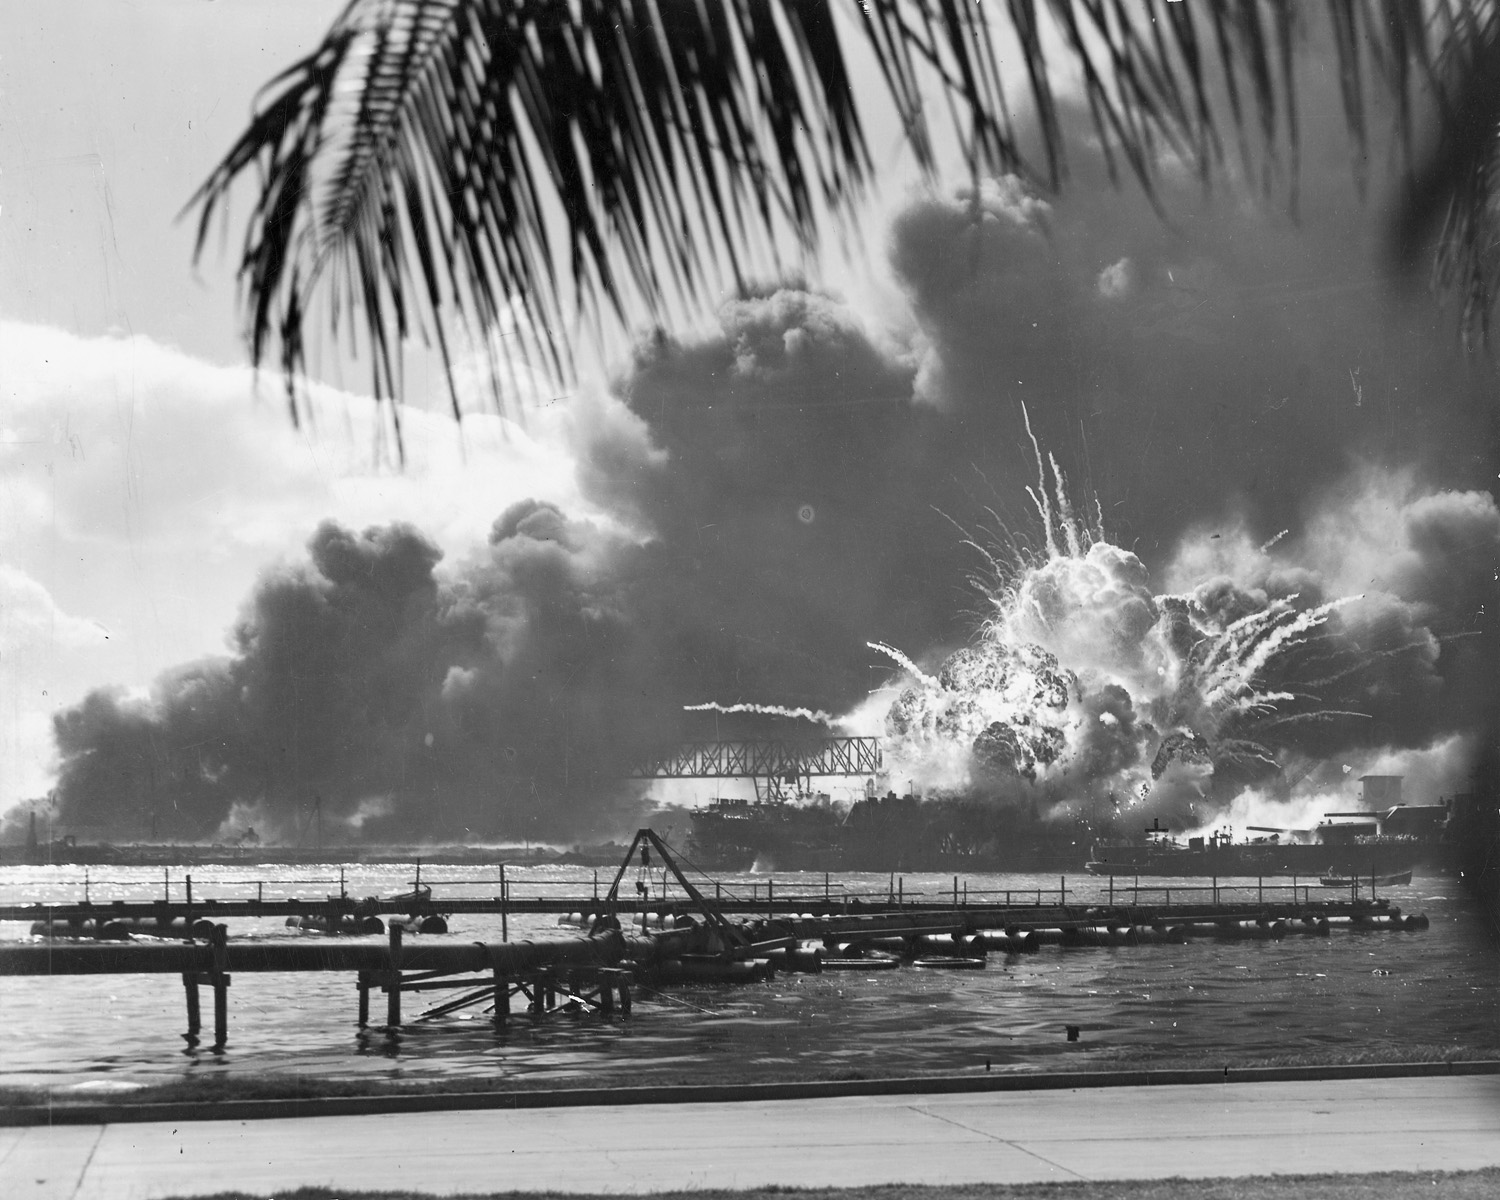 Photo of exploding vessel near Pearl Harbor in WWII.